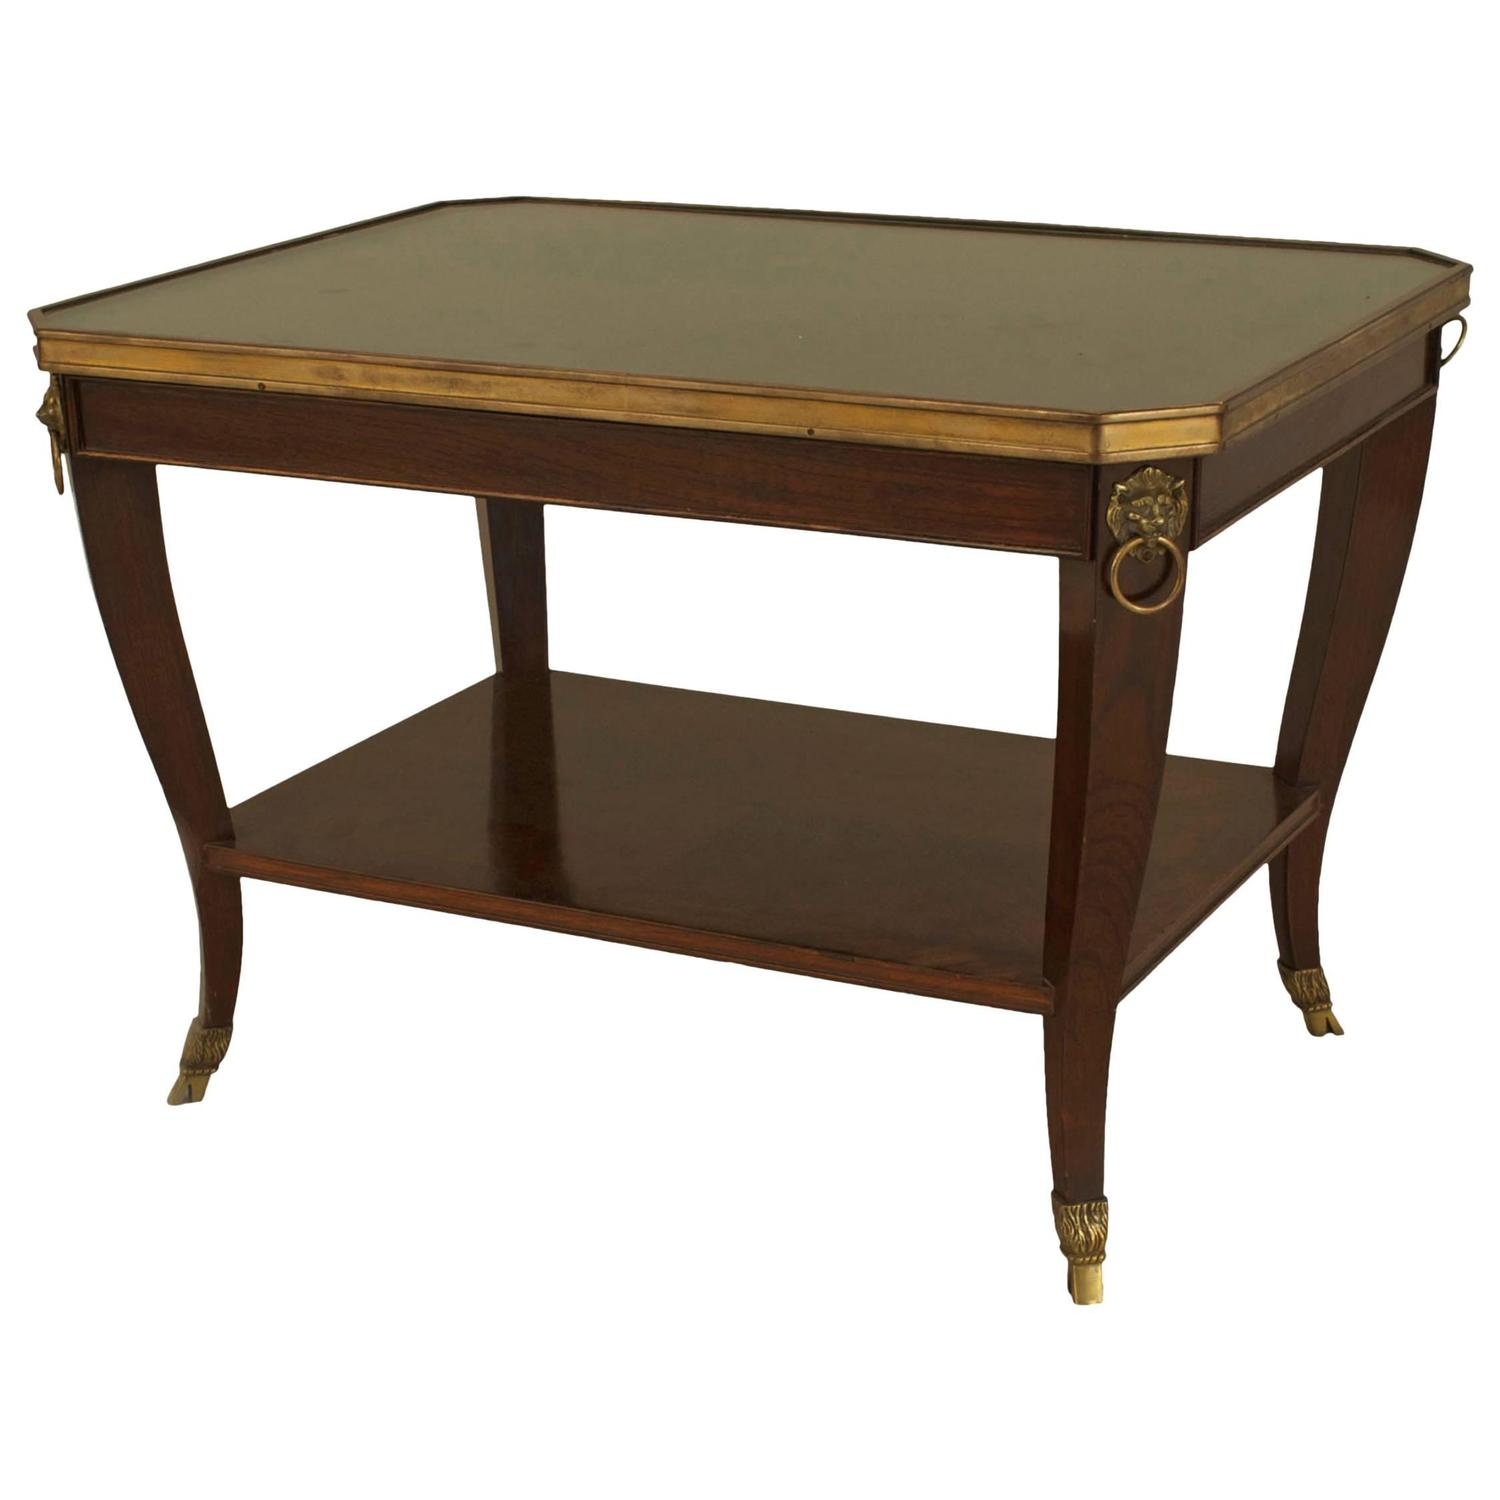 French Regence Style Mahogany Coffee Table By Jansen For Sale At 1stdibs